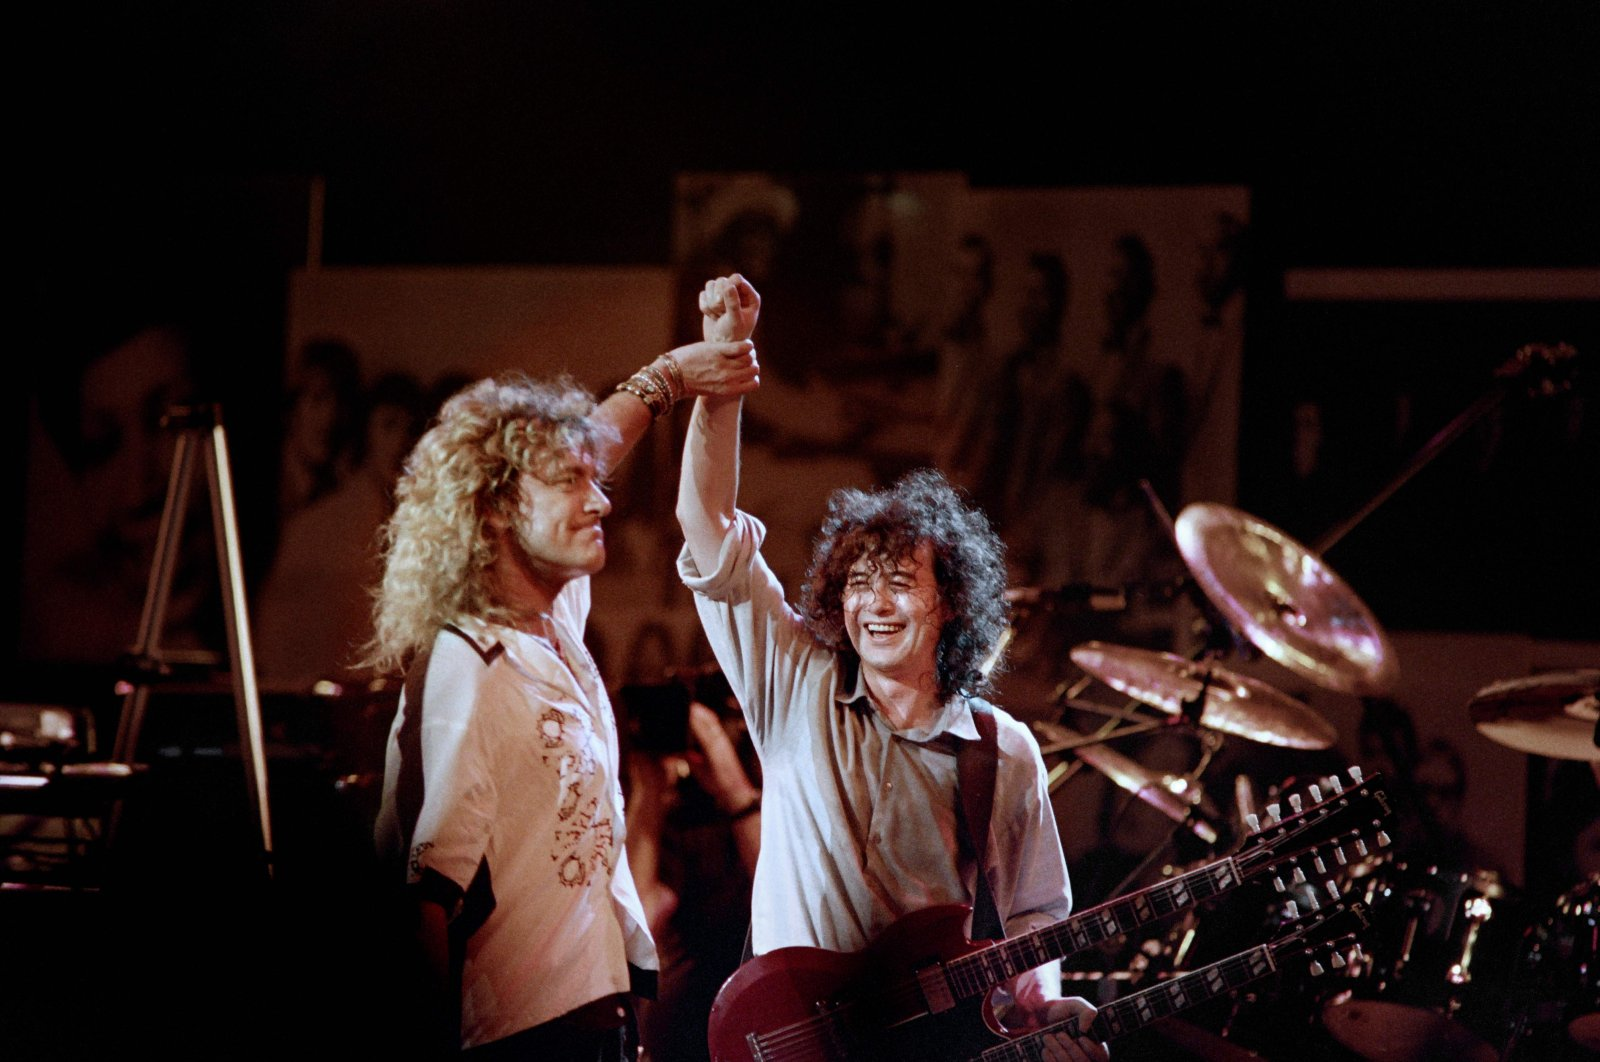 In this file photo, British singer Robert Plant (L) holds hands raised high with British guitarist Jimmy Page during a Led Zeppelin reunion performance at Madison Square Garden in New York, May 14, 1988. (AFP Photo)